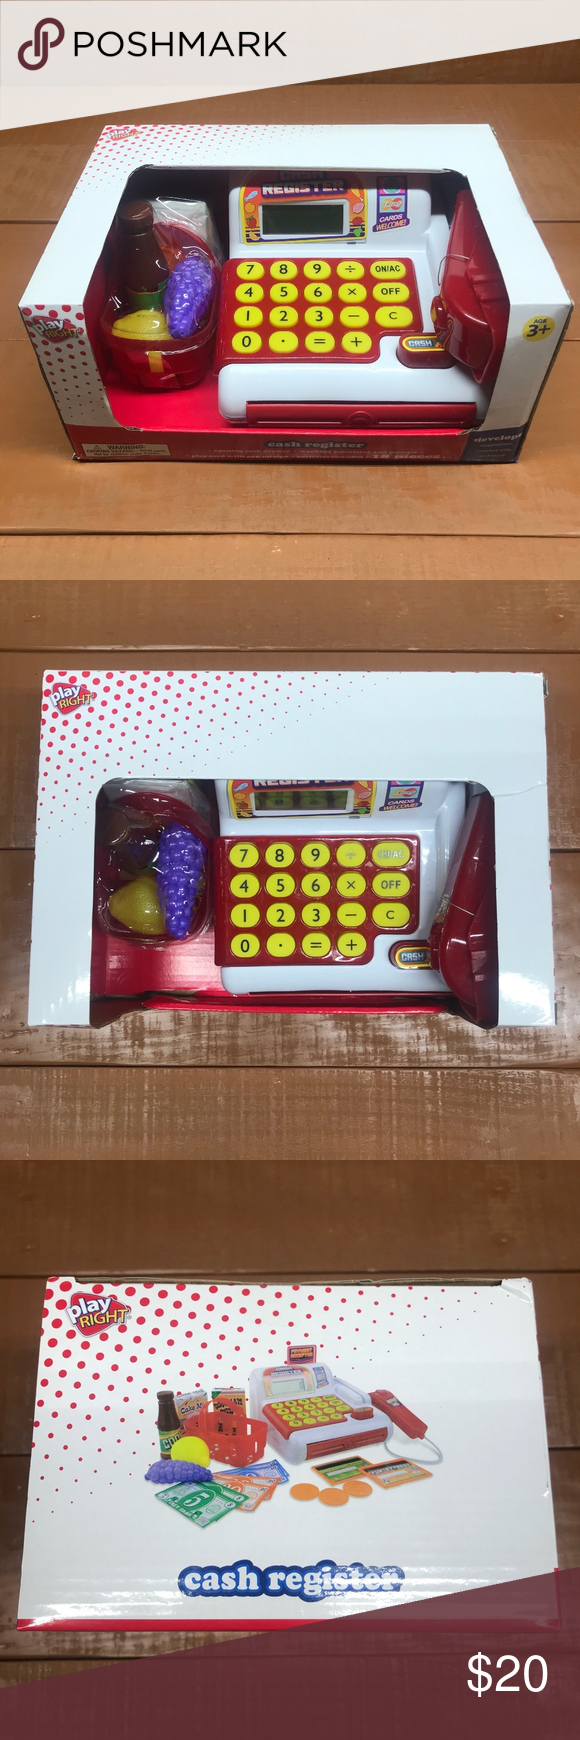 Kids Toy Cash Register New in box Electronic Toy Cash